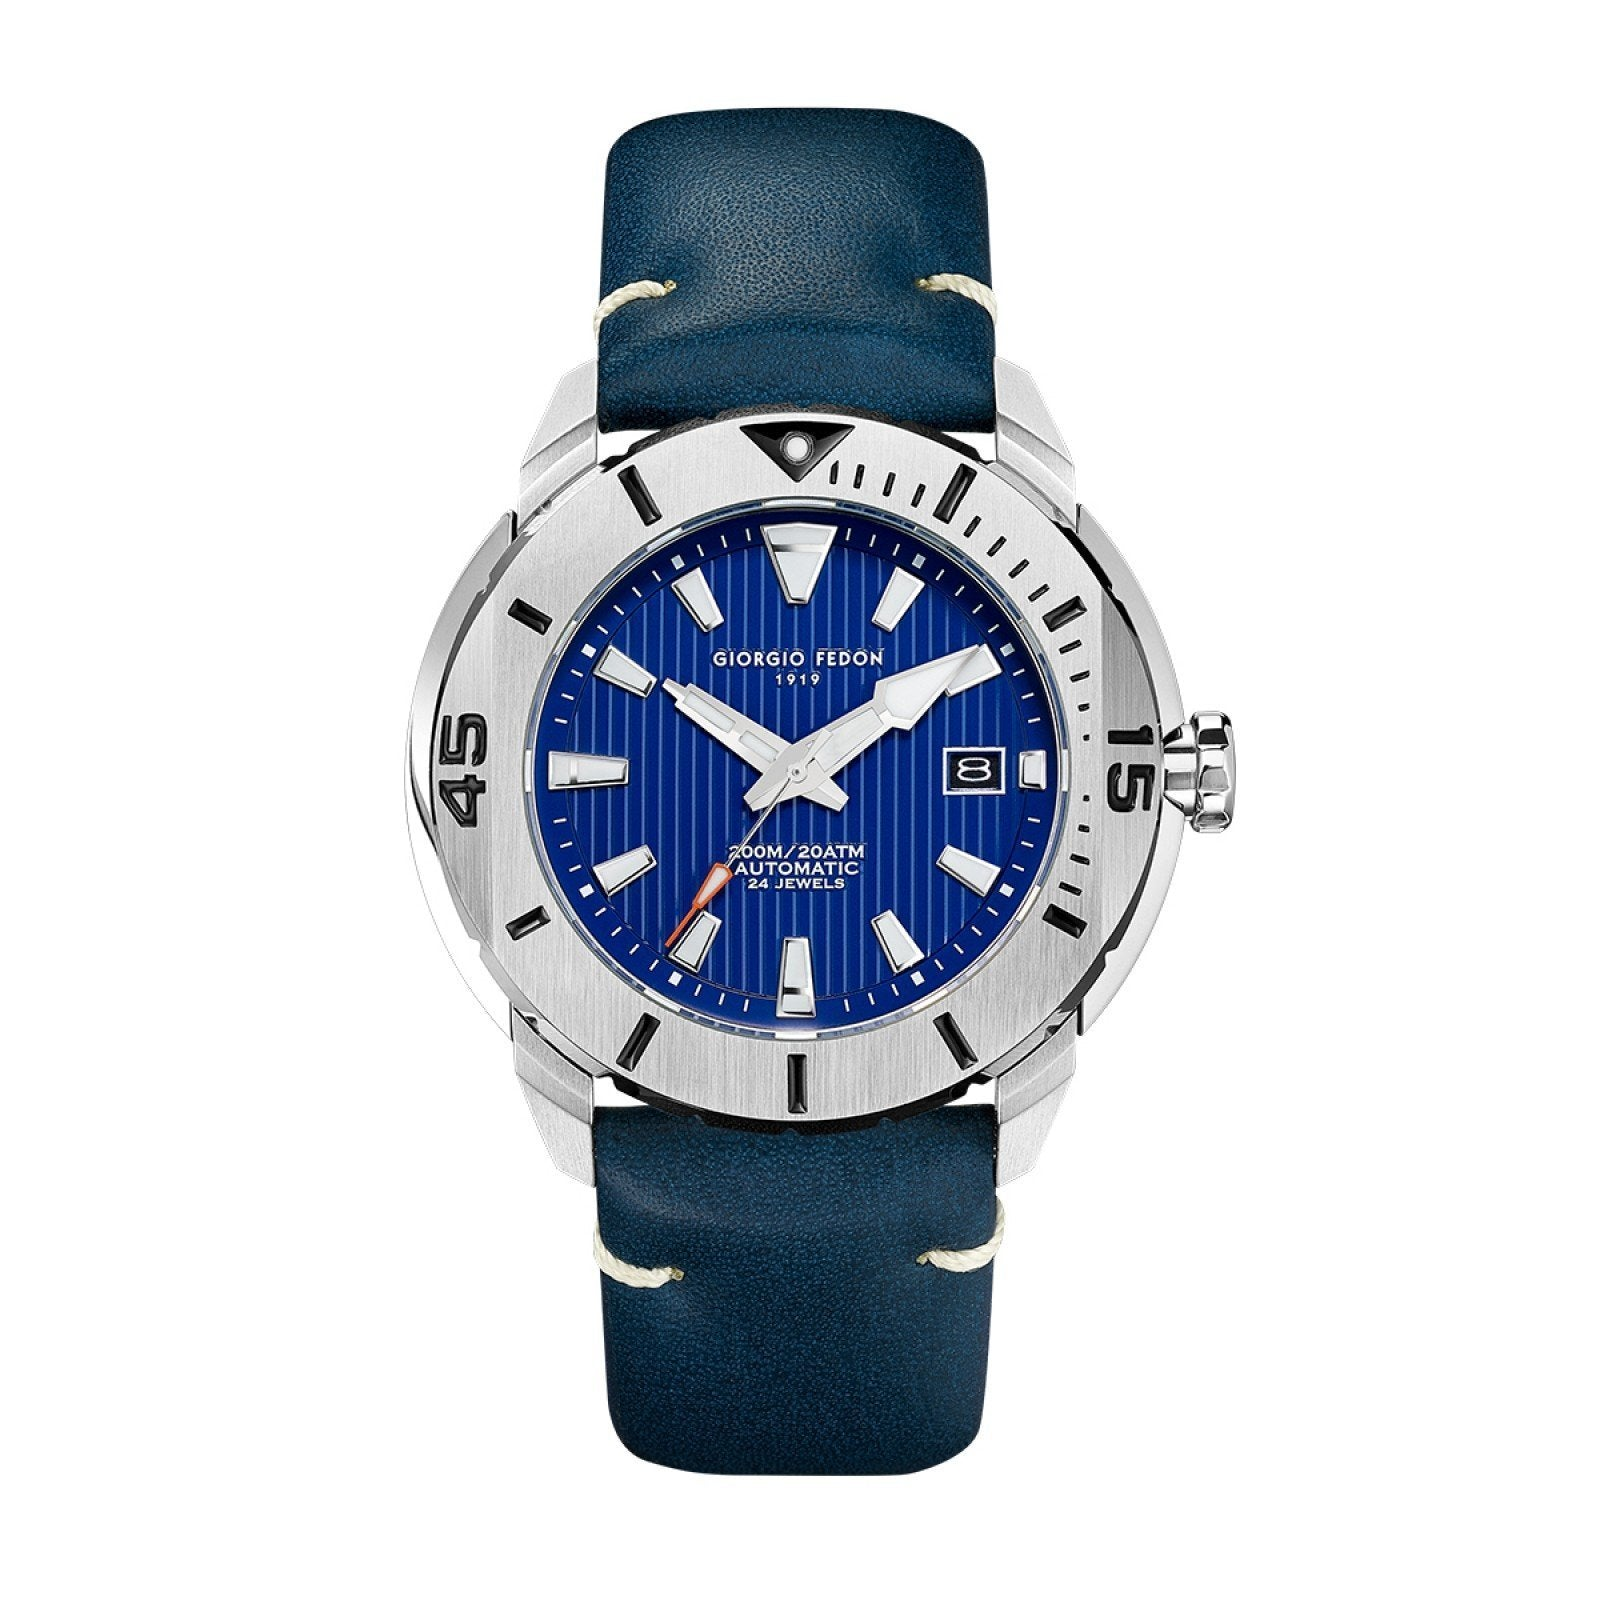 Giorgio Fedon Ocean Hover Blue - Watches & Crystals